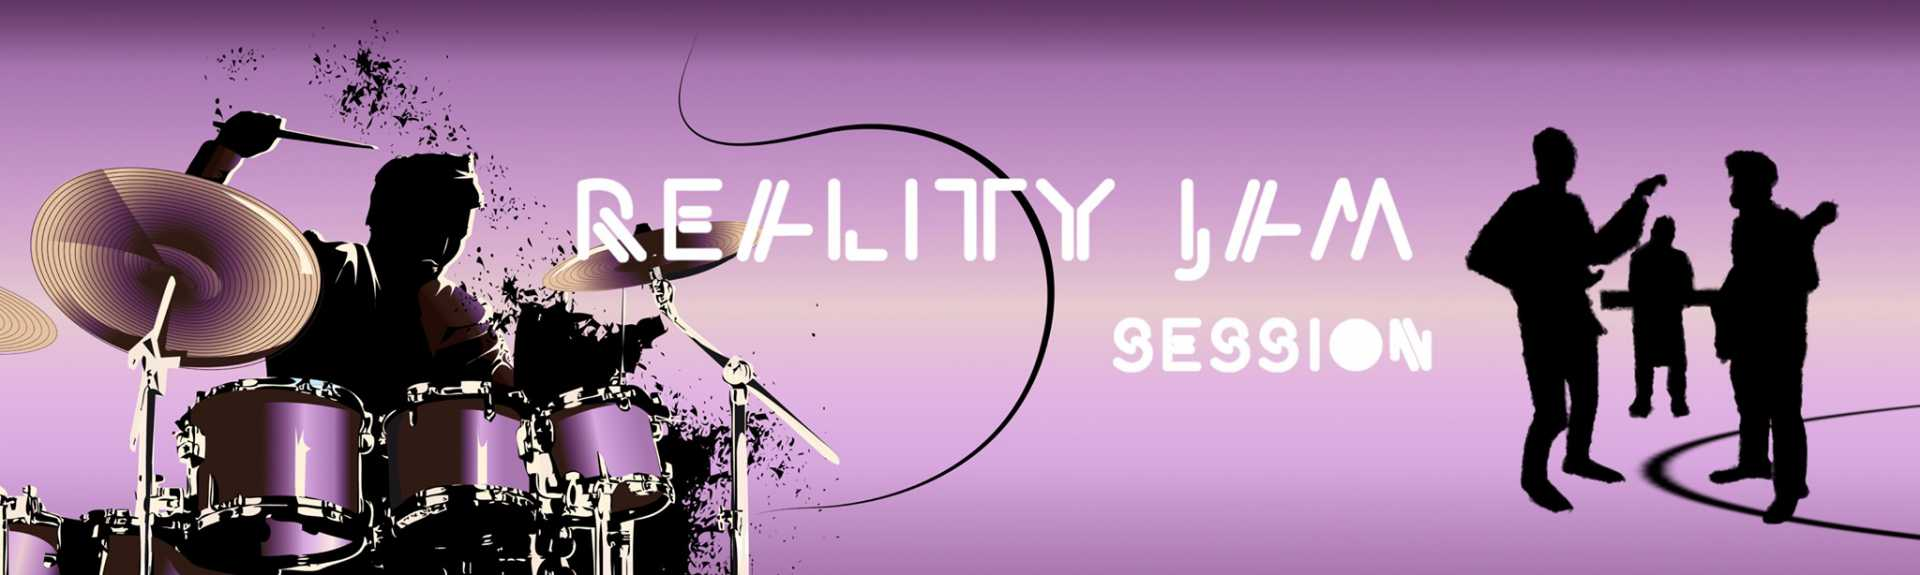 Reality Jam Session